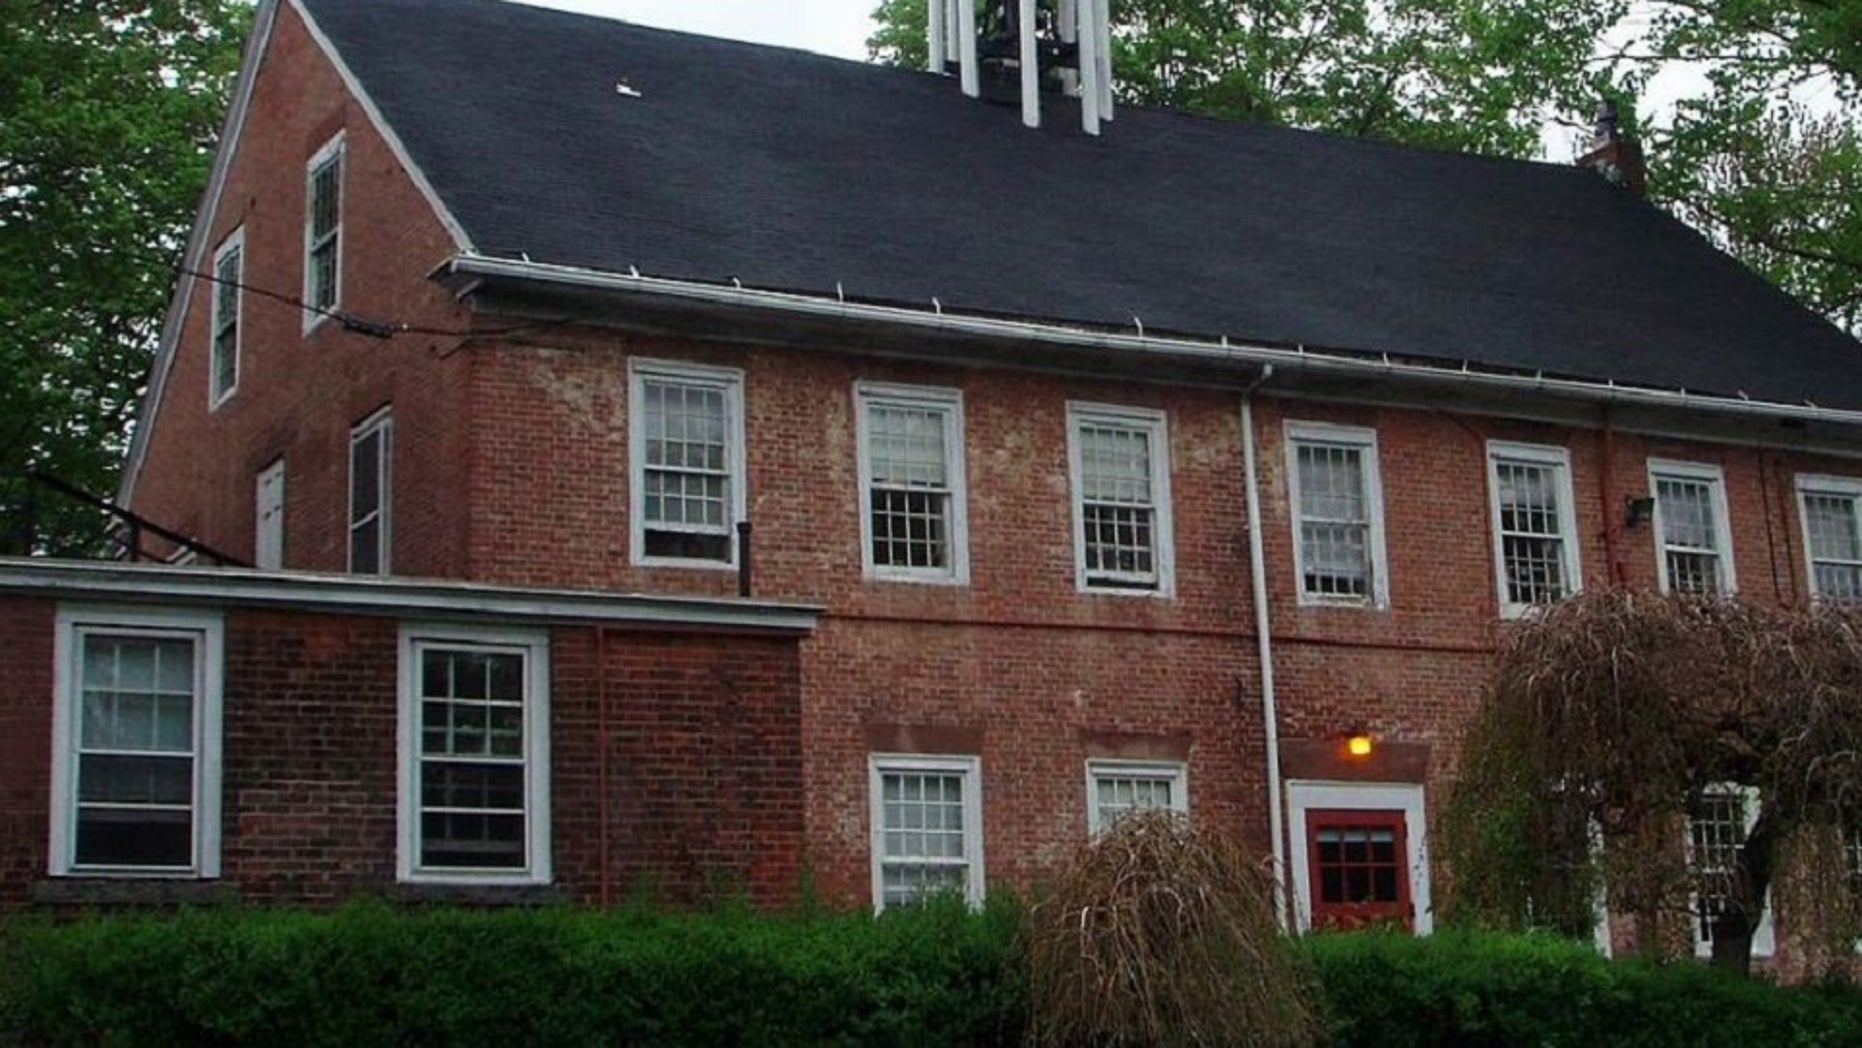 Cheshire Academy in Cheshire, Conn., was founded in 1794, according to the school's website.